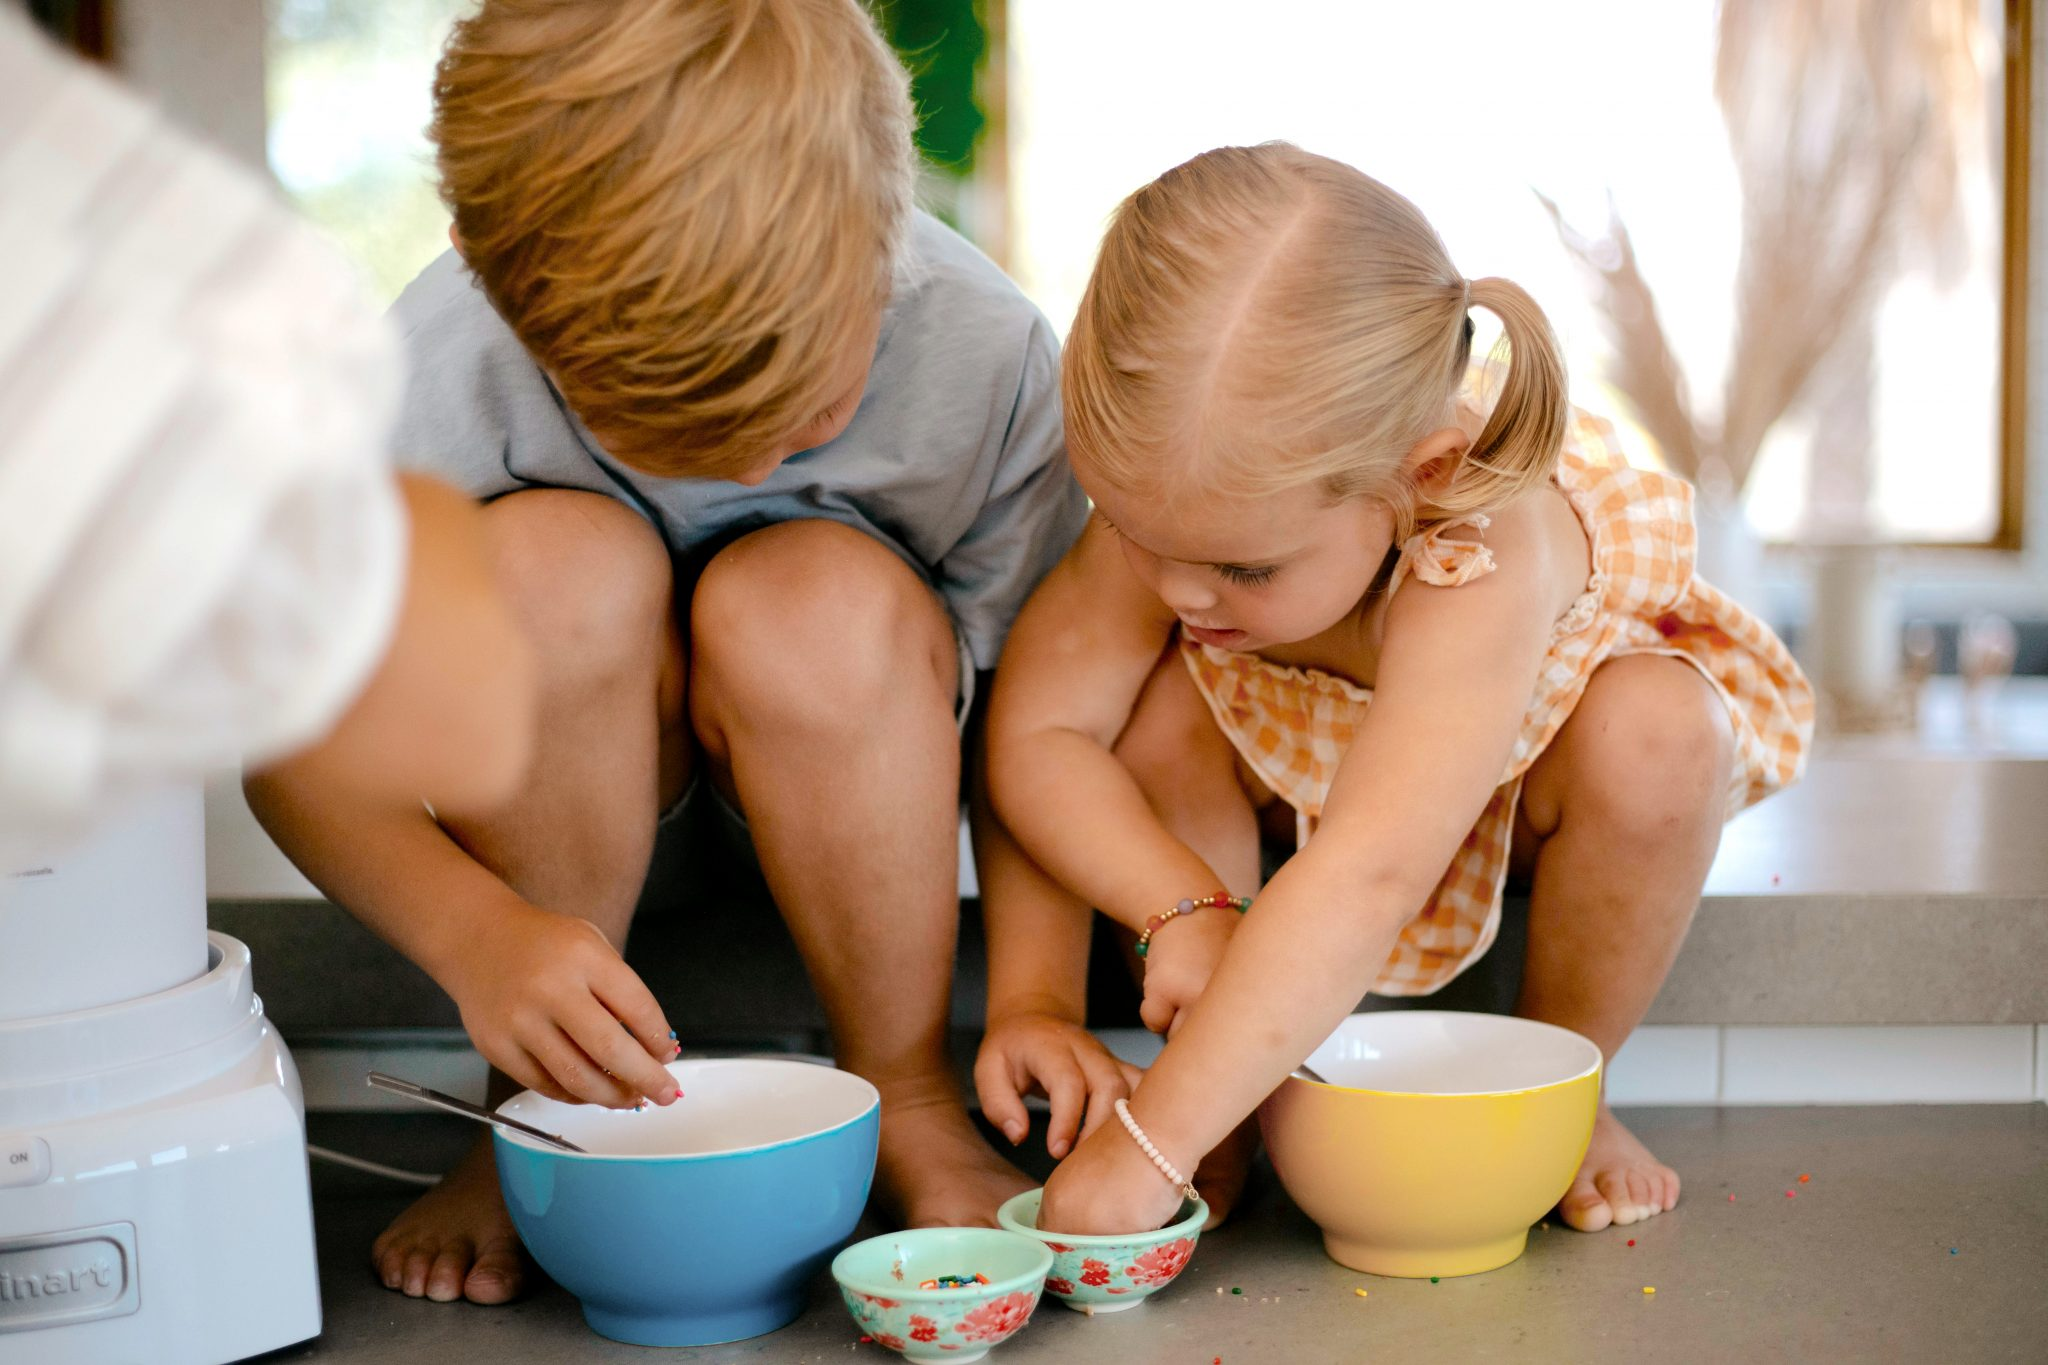 two kids playing with colorful bowls